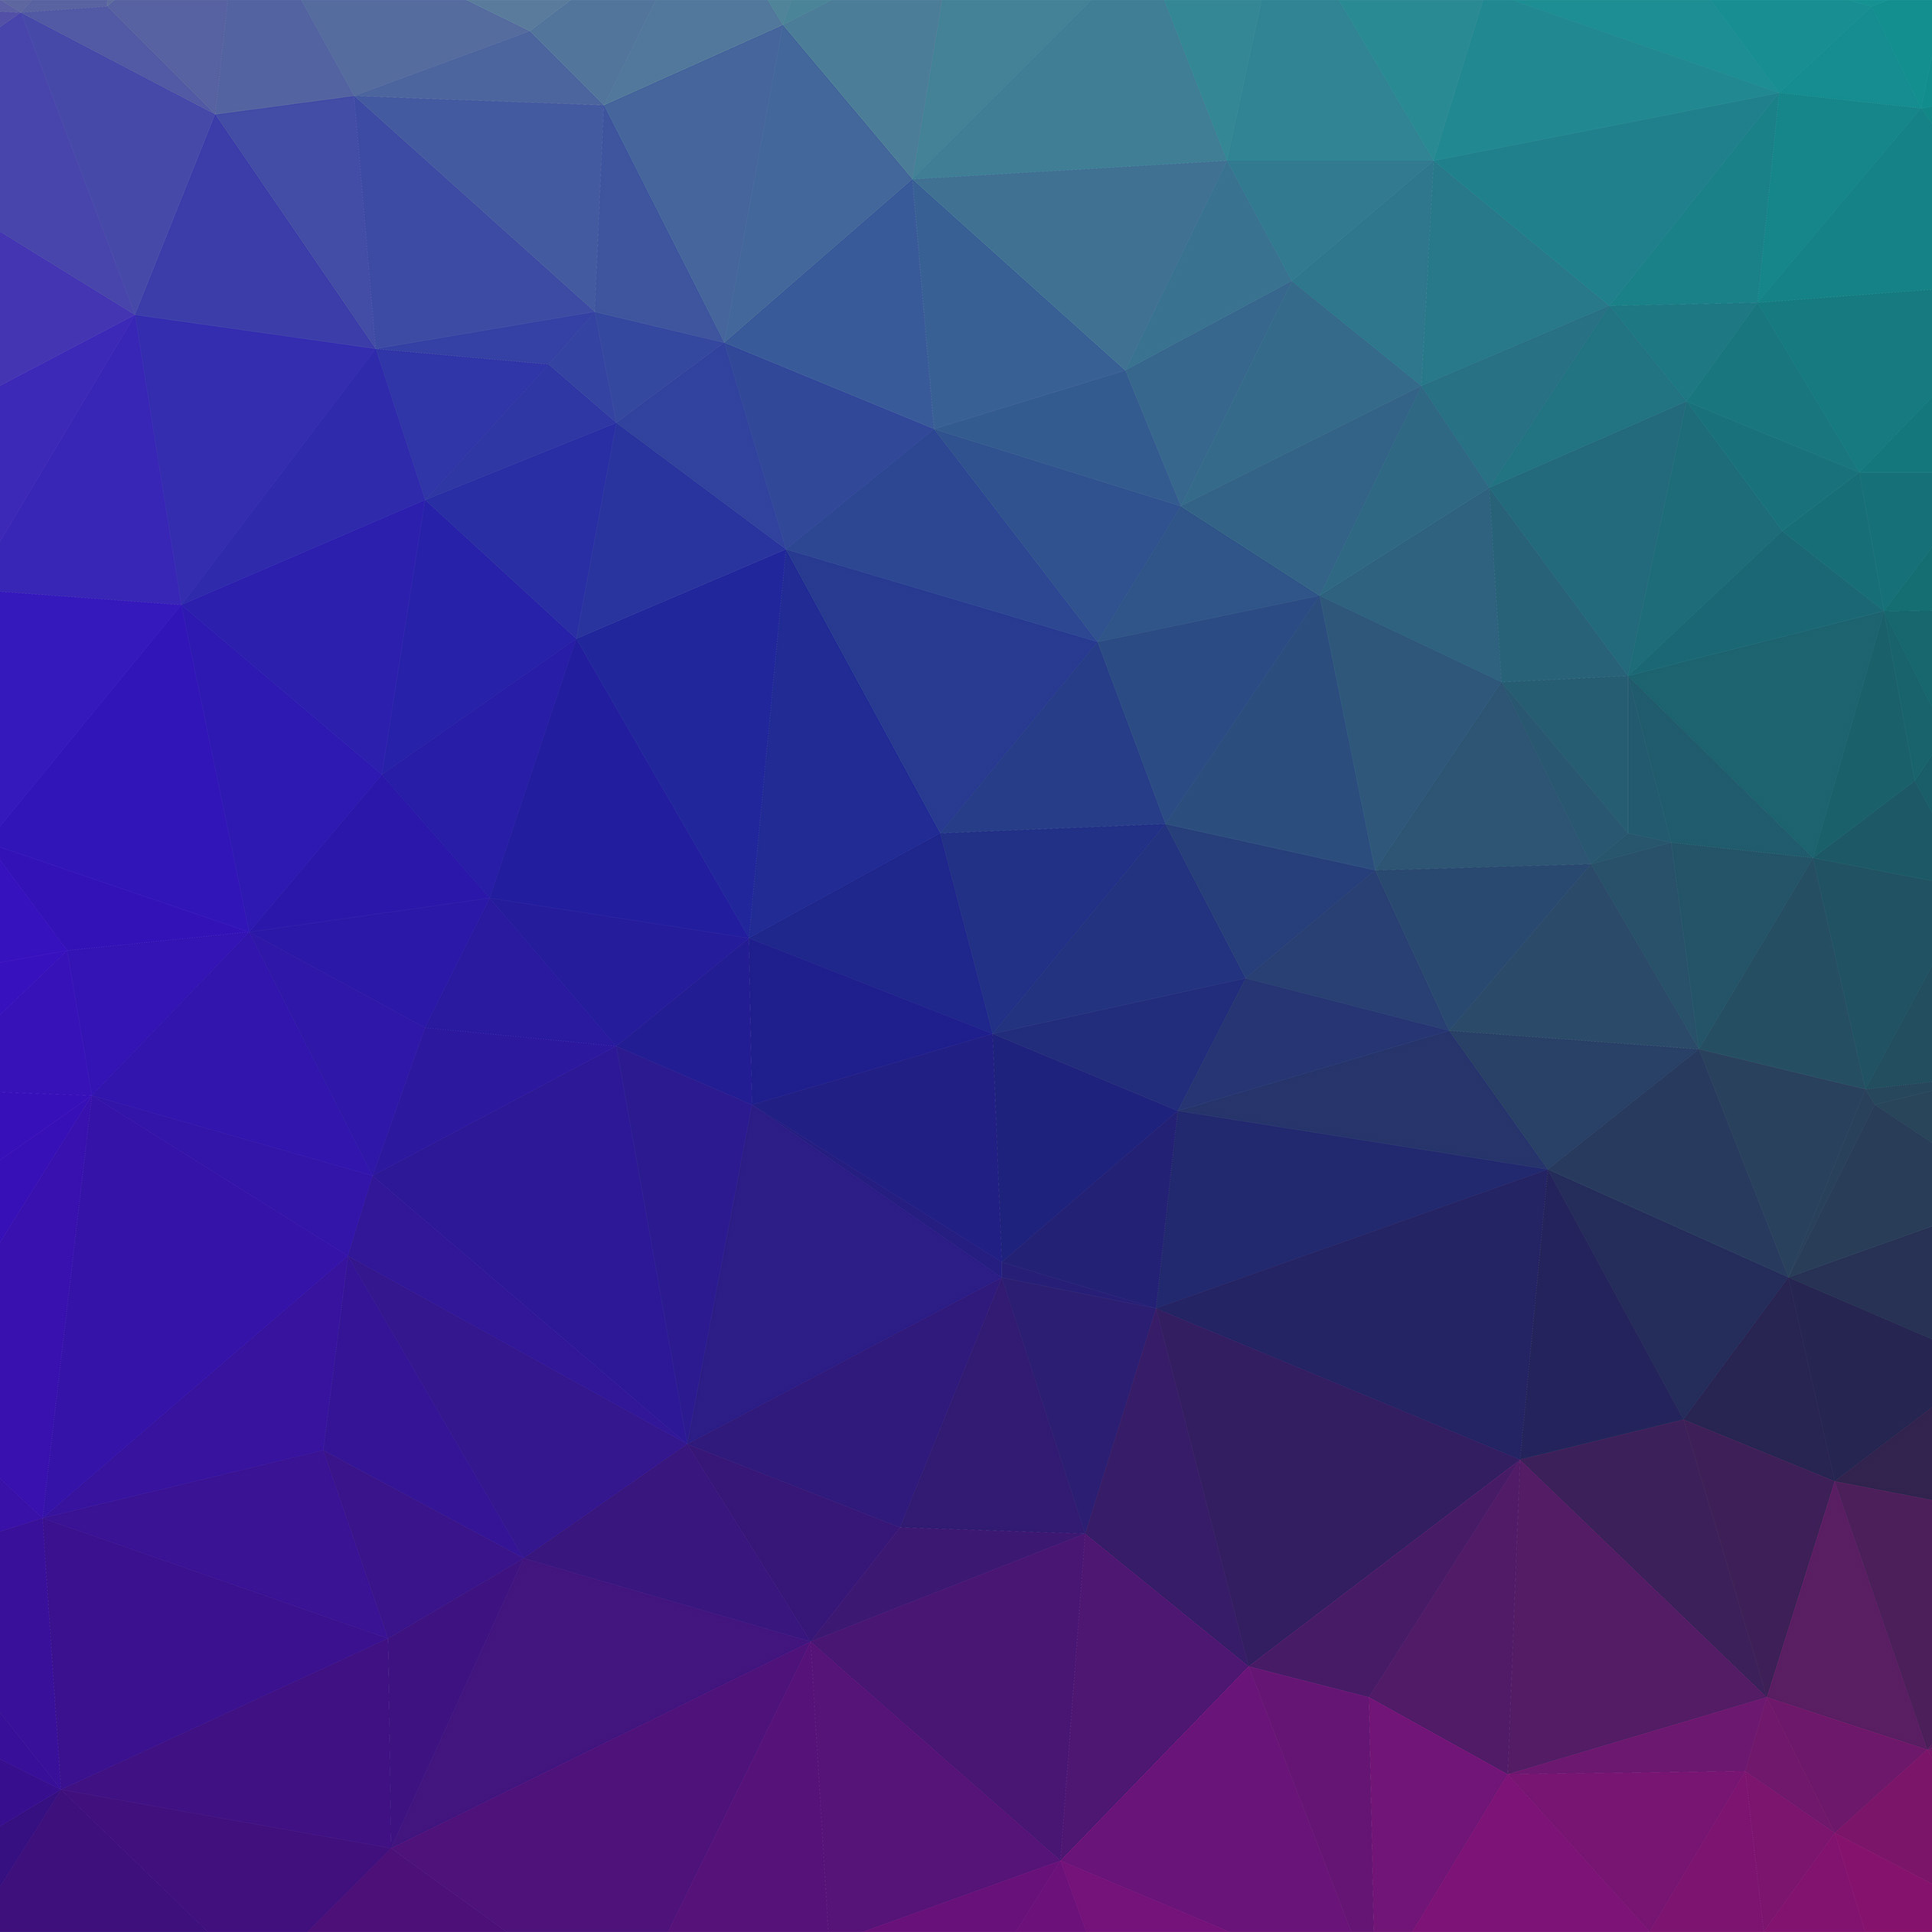 Wallpapers Of The Week Colorful Shapes